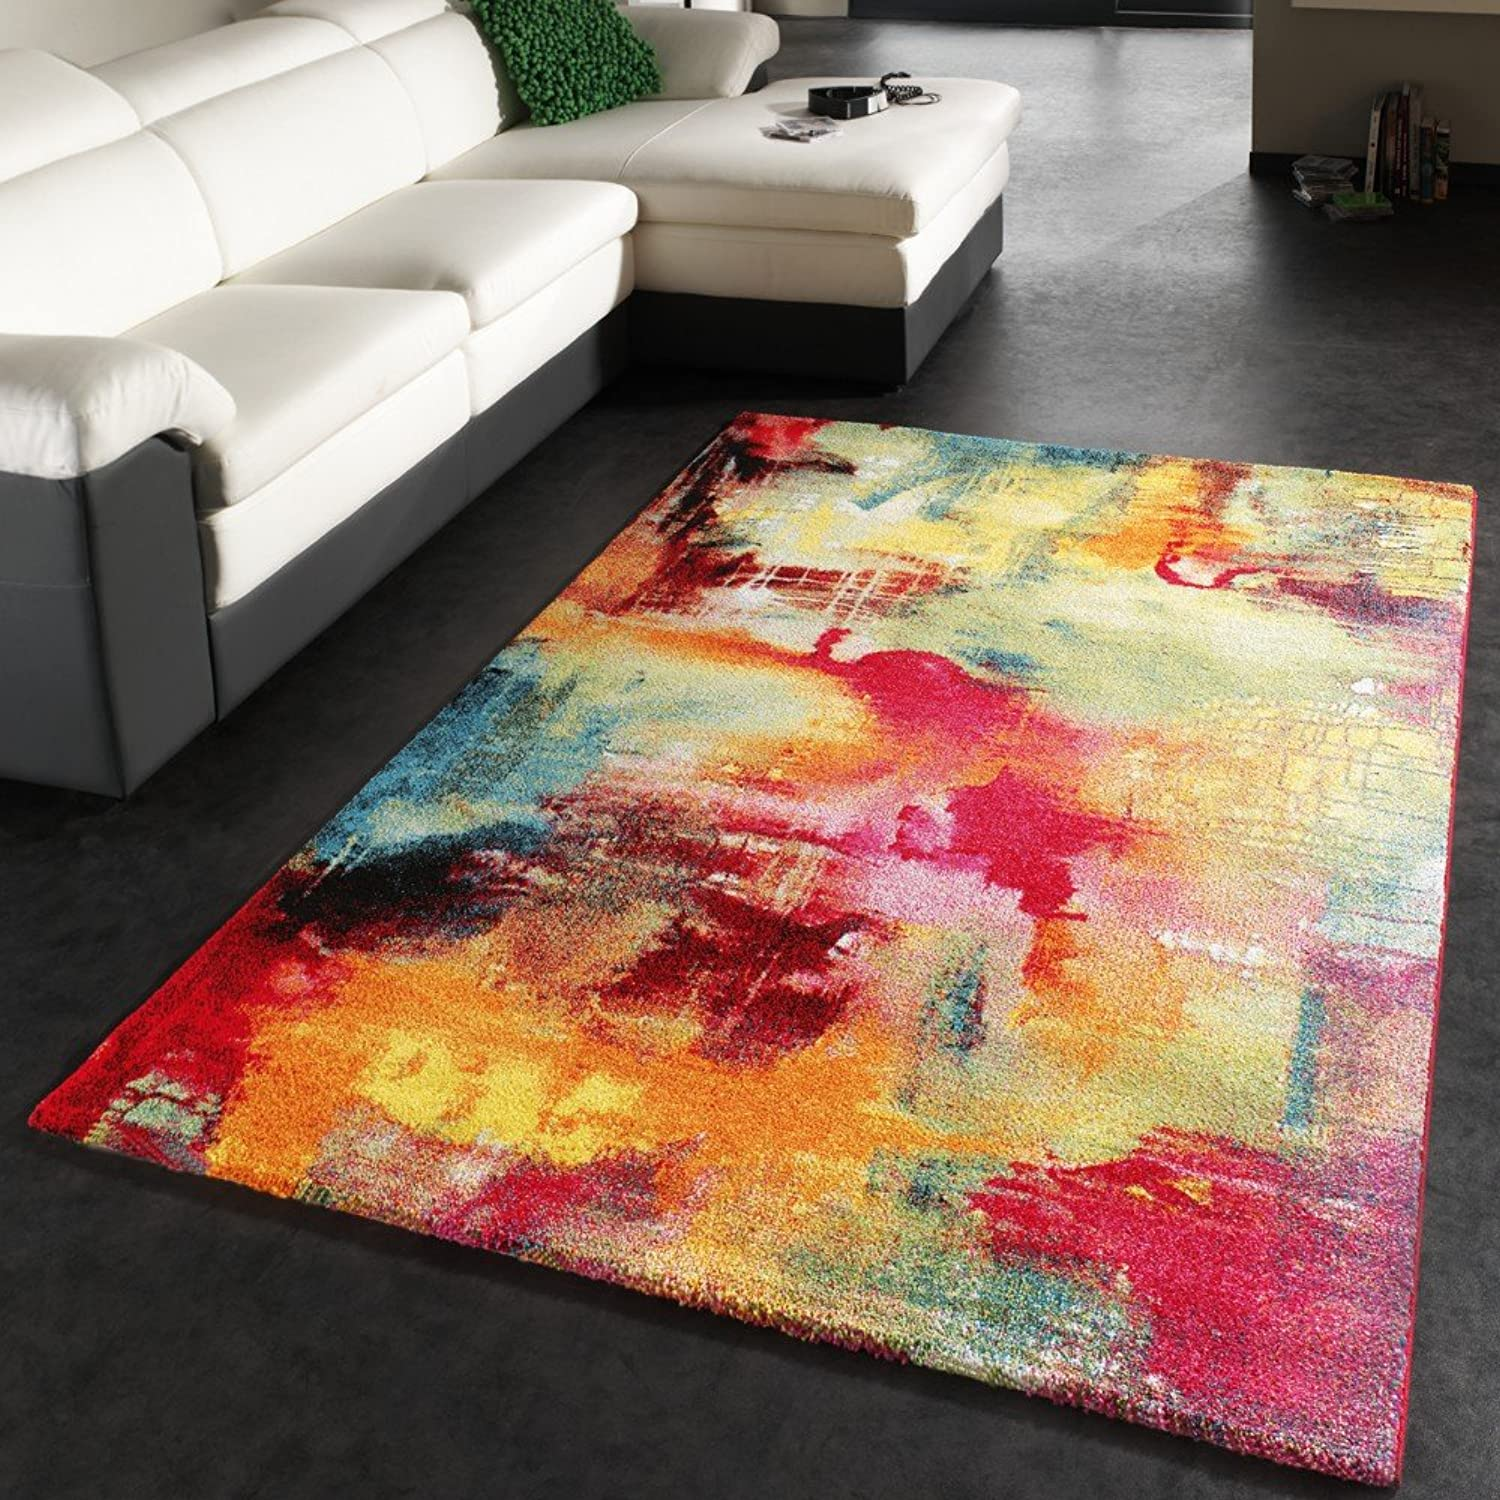 Paco Home Designer Rug Contemporary Textured Canvas Mottled Green bluee Red Yellow, Size 160x230 cm